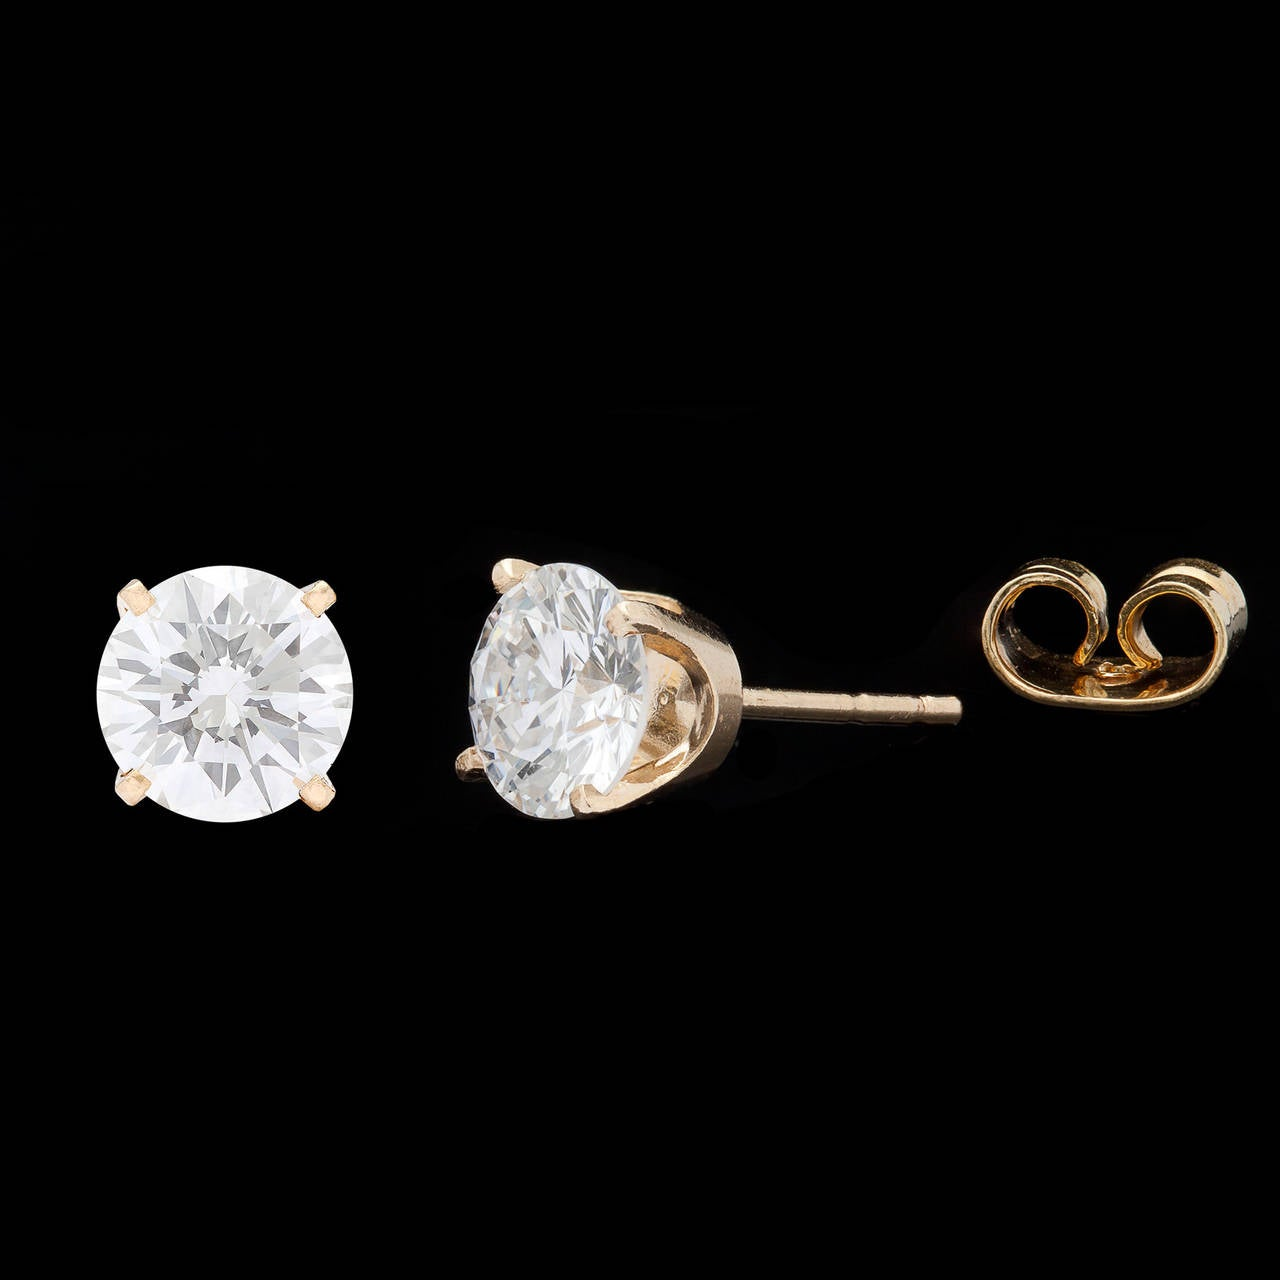 2.04 Carat GIA Cert Round Brilliant Cut Diamond Gold Earrings In Excellent Condition For Sale In San Francisco, CA